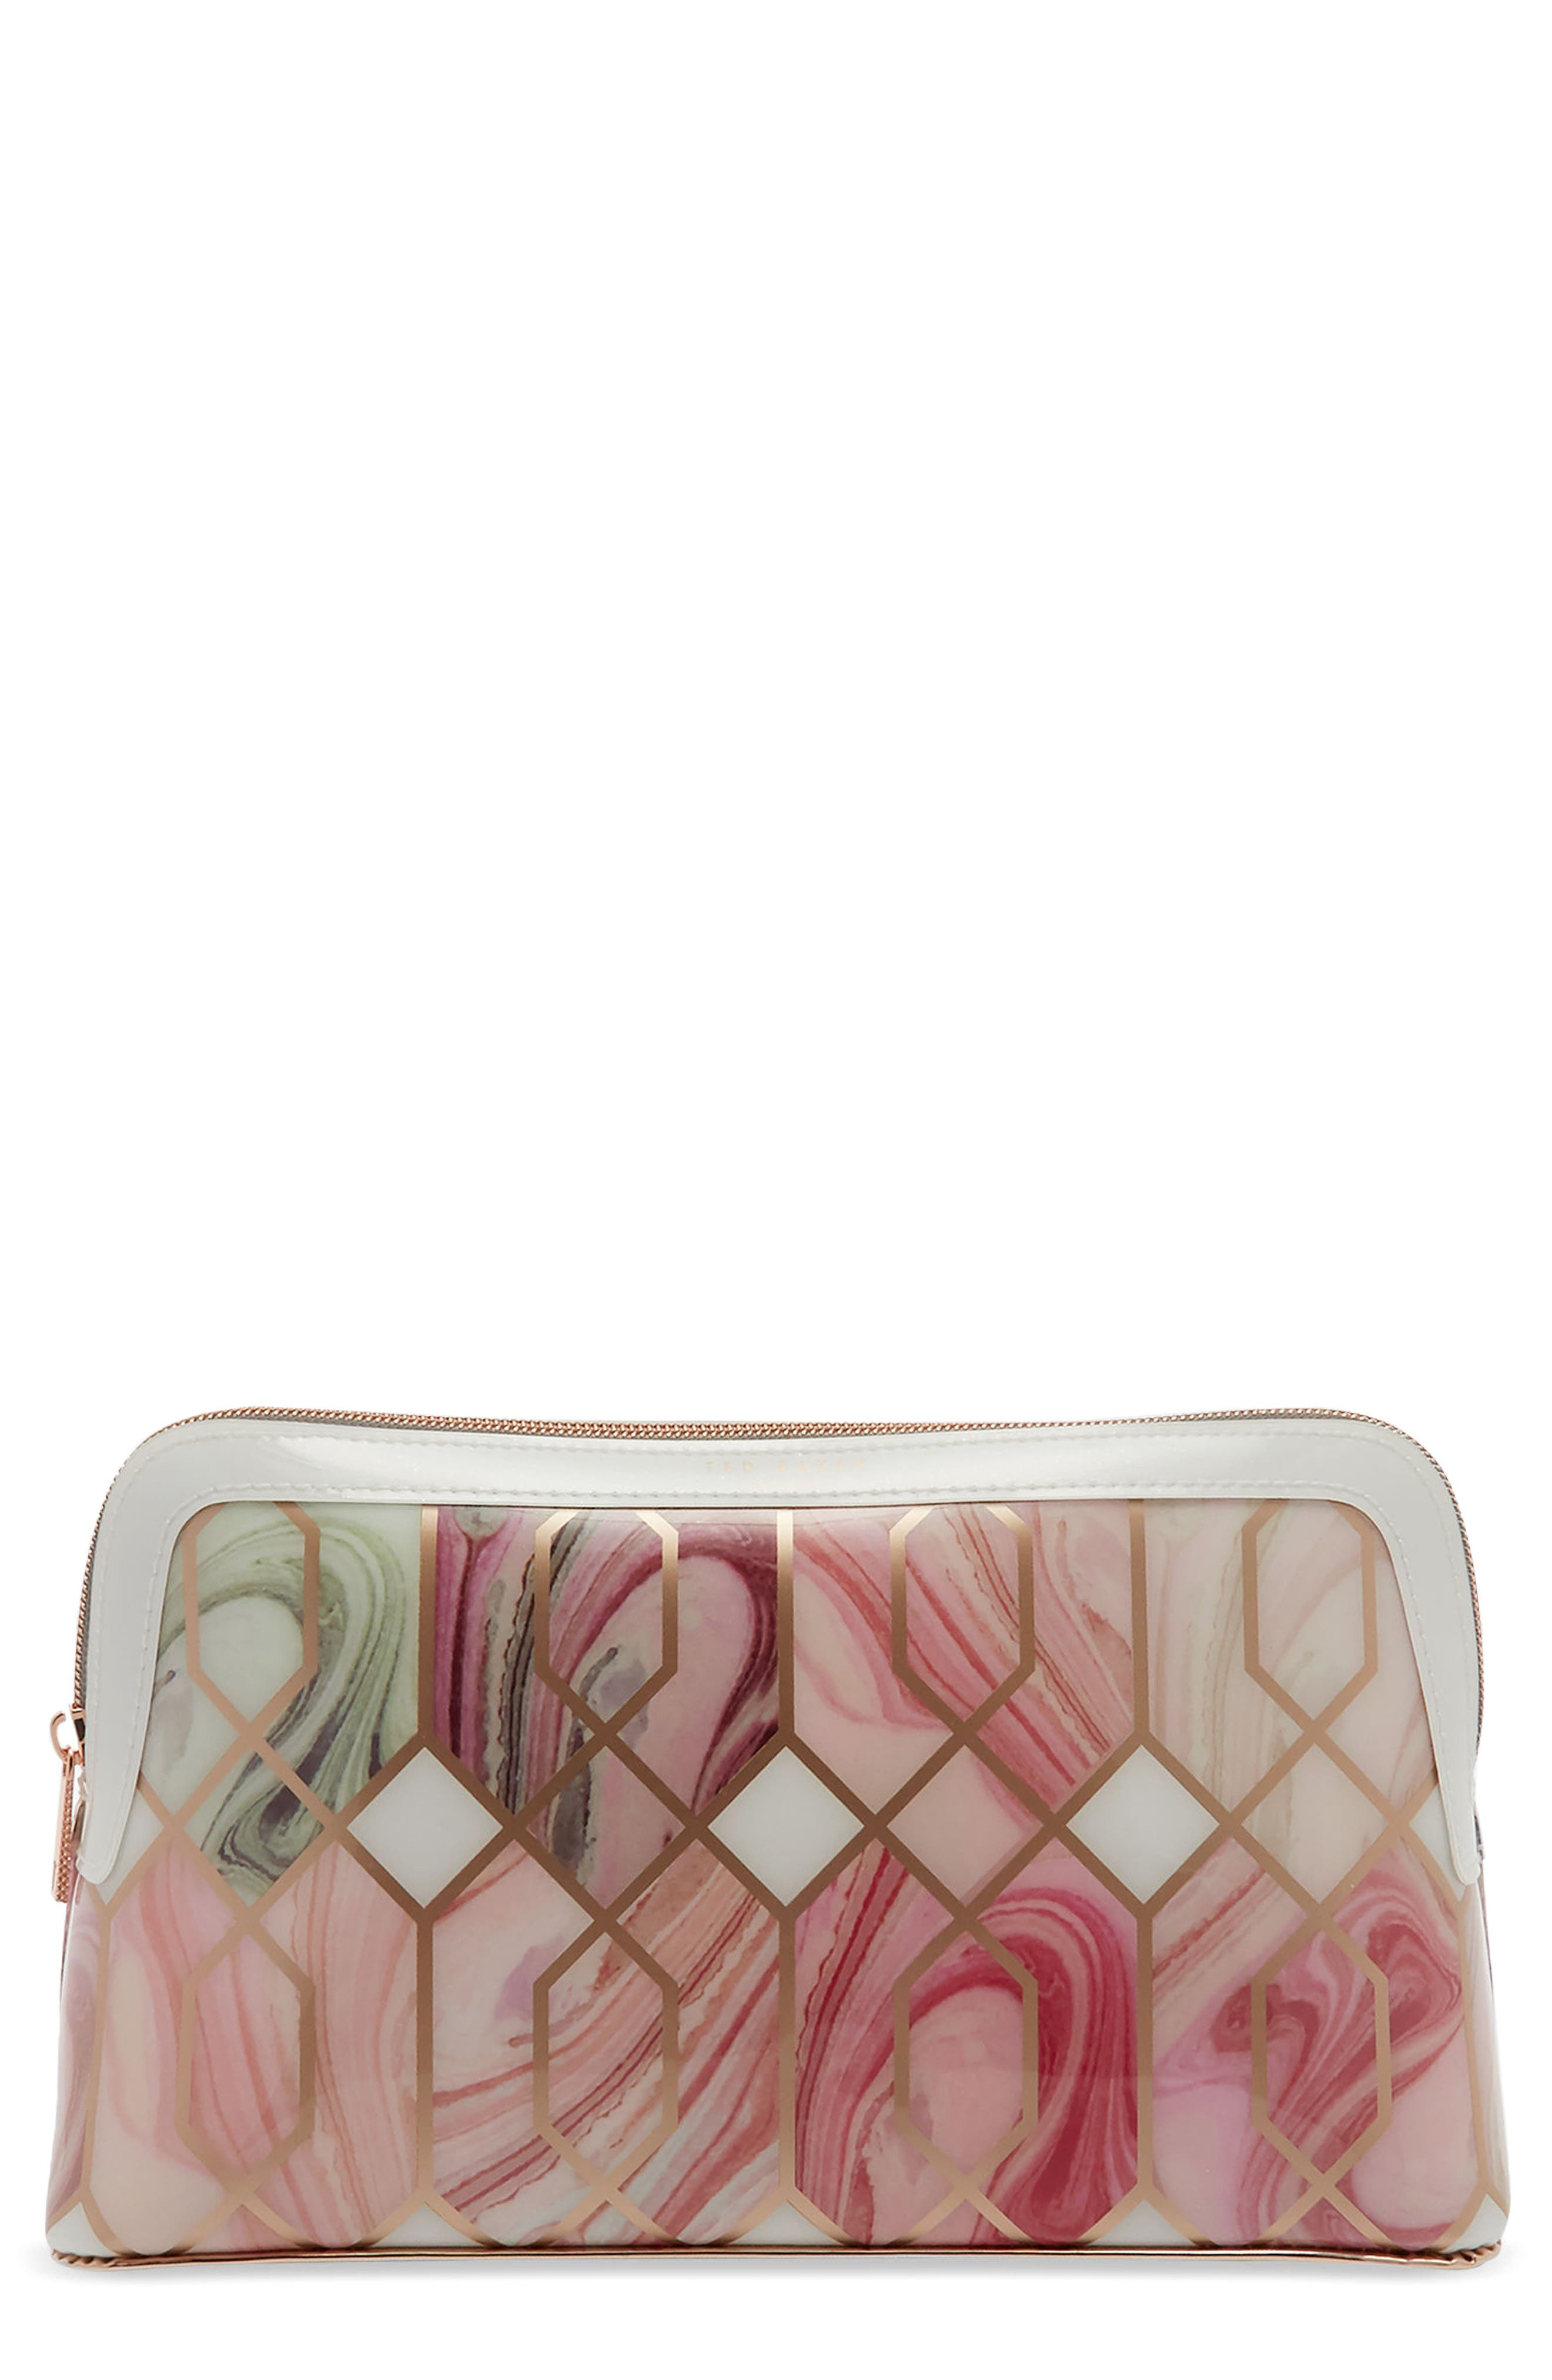 Elliee – Sea of Clouds Wash Bag,                             Main thumbnail 1, color,                             White